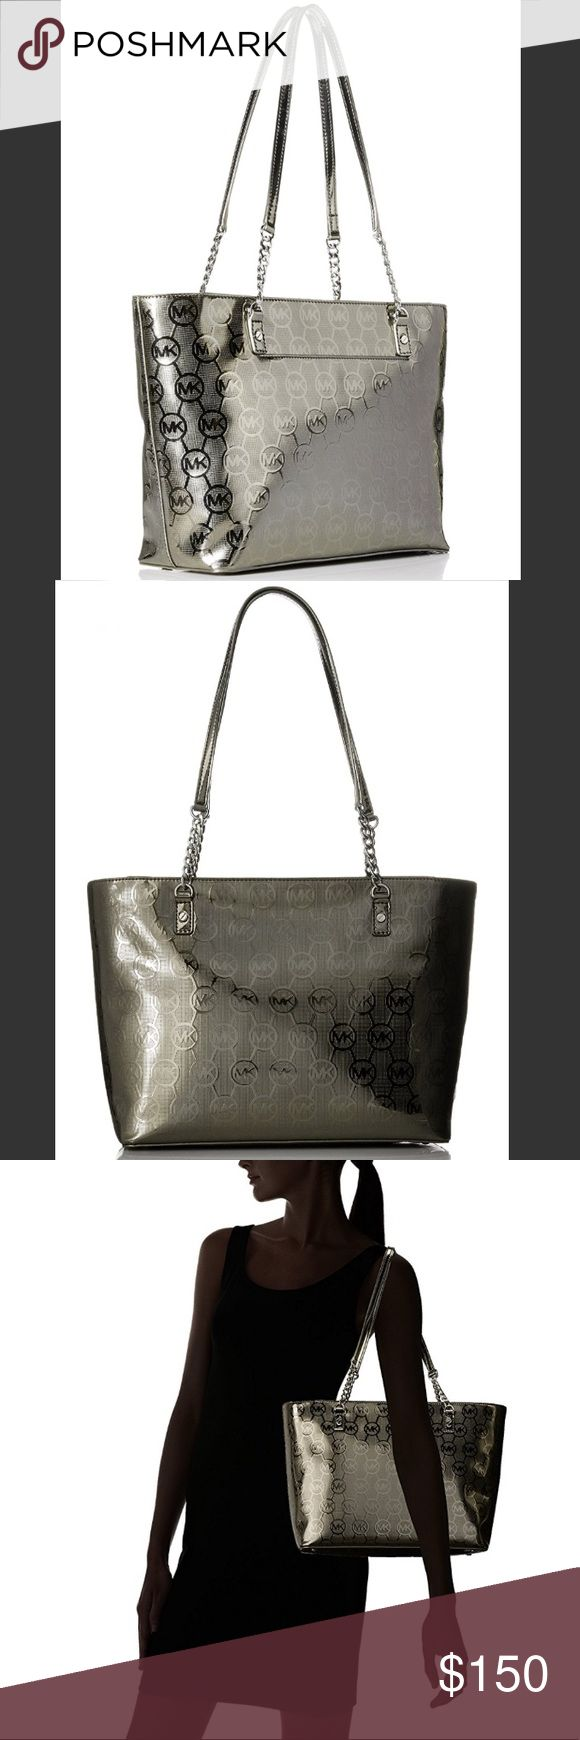 Michael Kors Jet Set Chain Tote - Metallic Cocoa Like new!!! Used maybe twice. Beautiful metallic pewter color with tons of pockets. No marks, scratches or other imperfections. Perfect size! Feel free to ask any other questions! Michael Kors Bags Totes